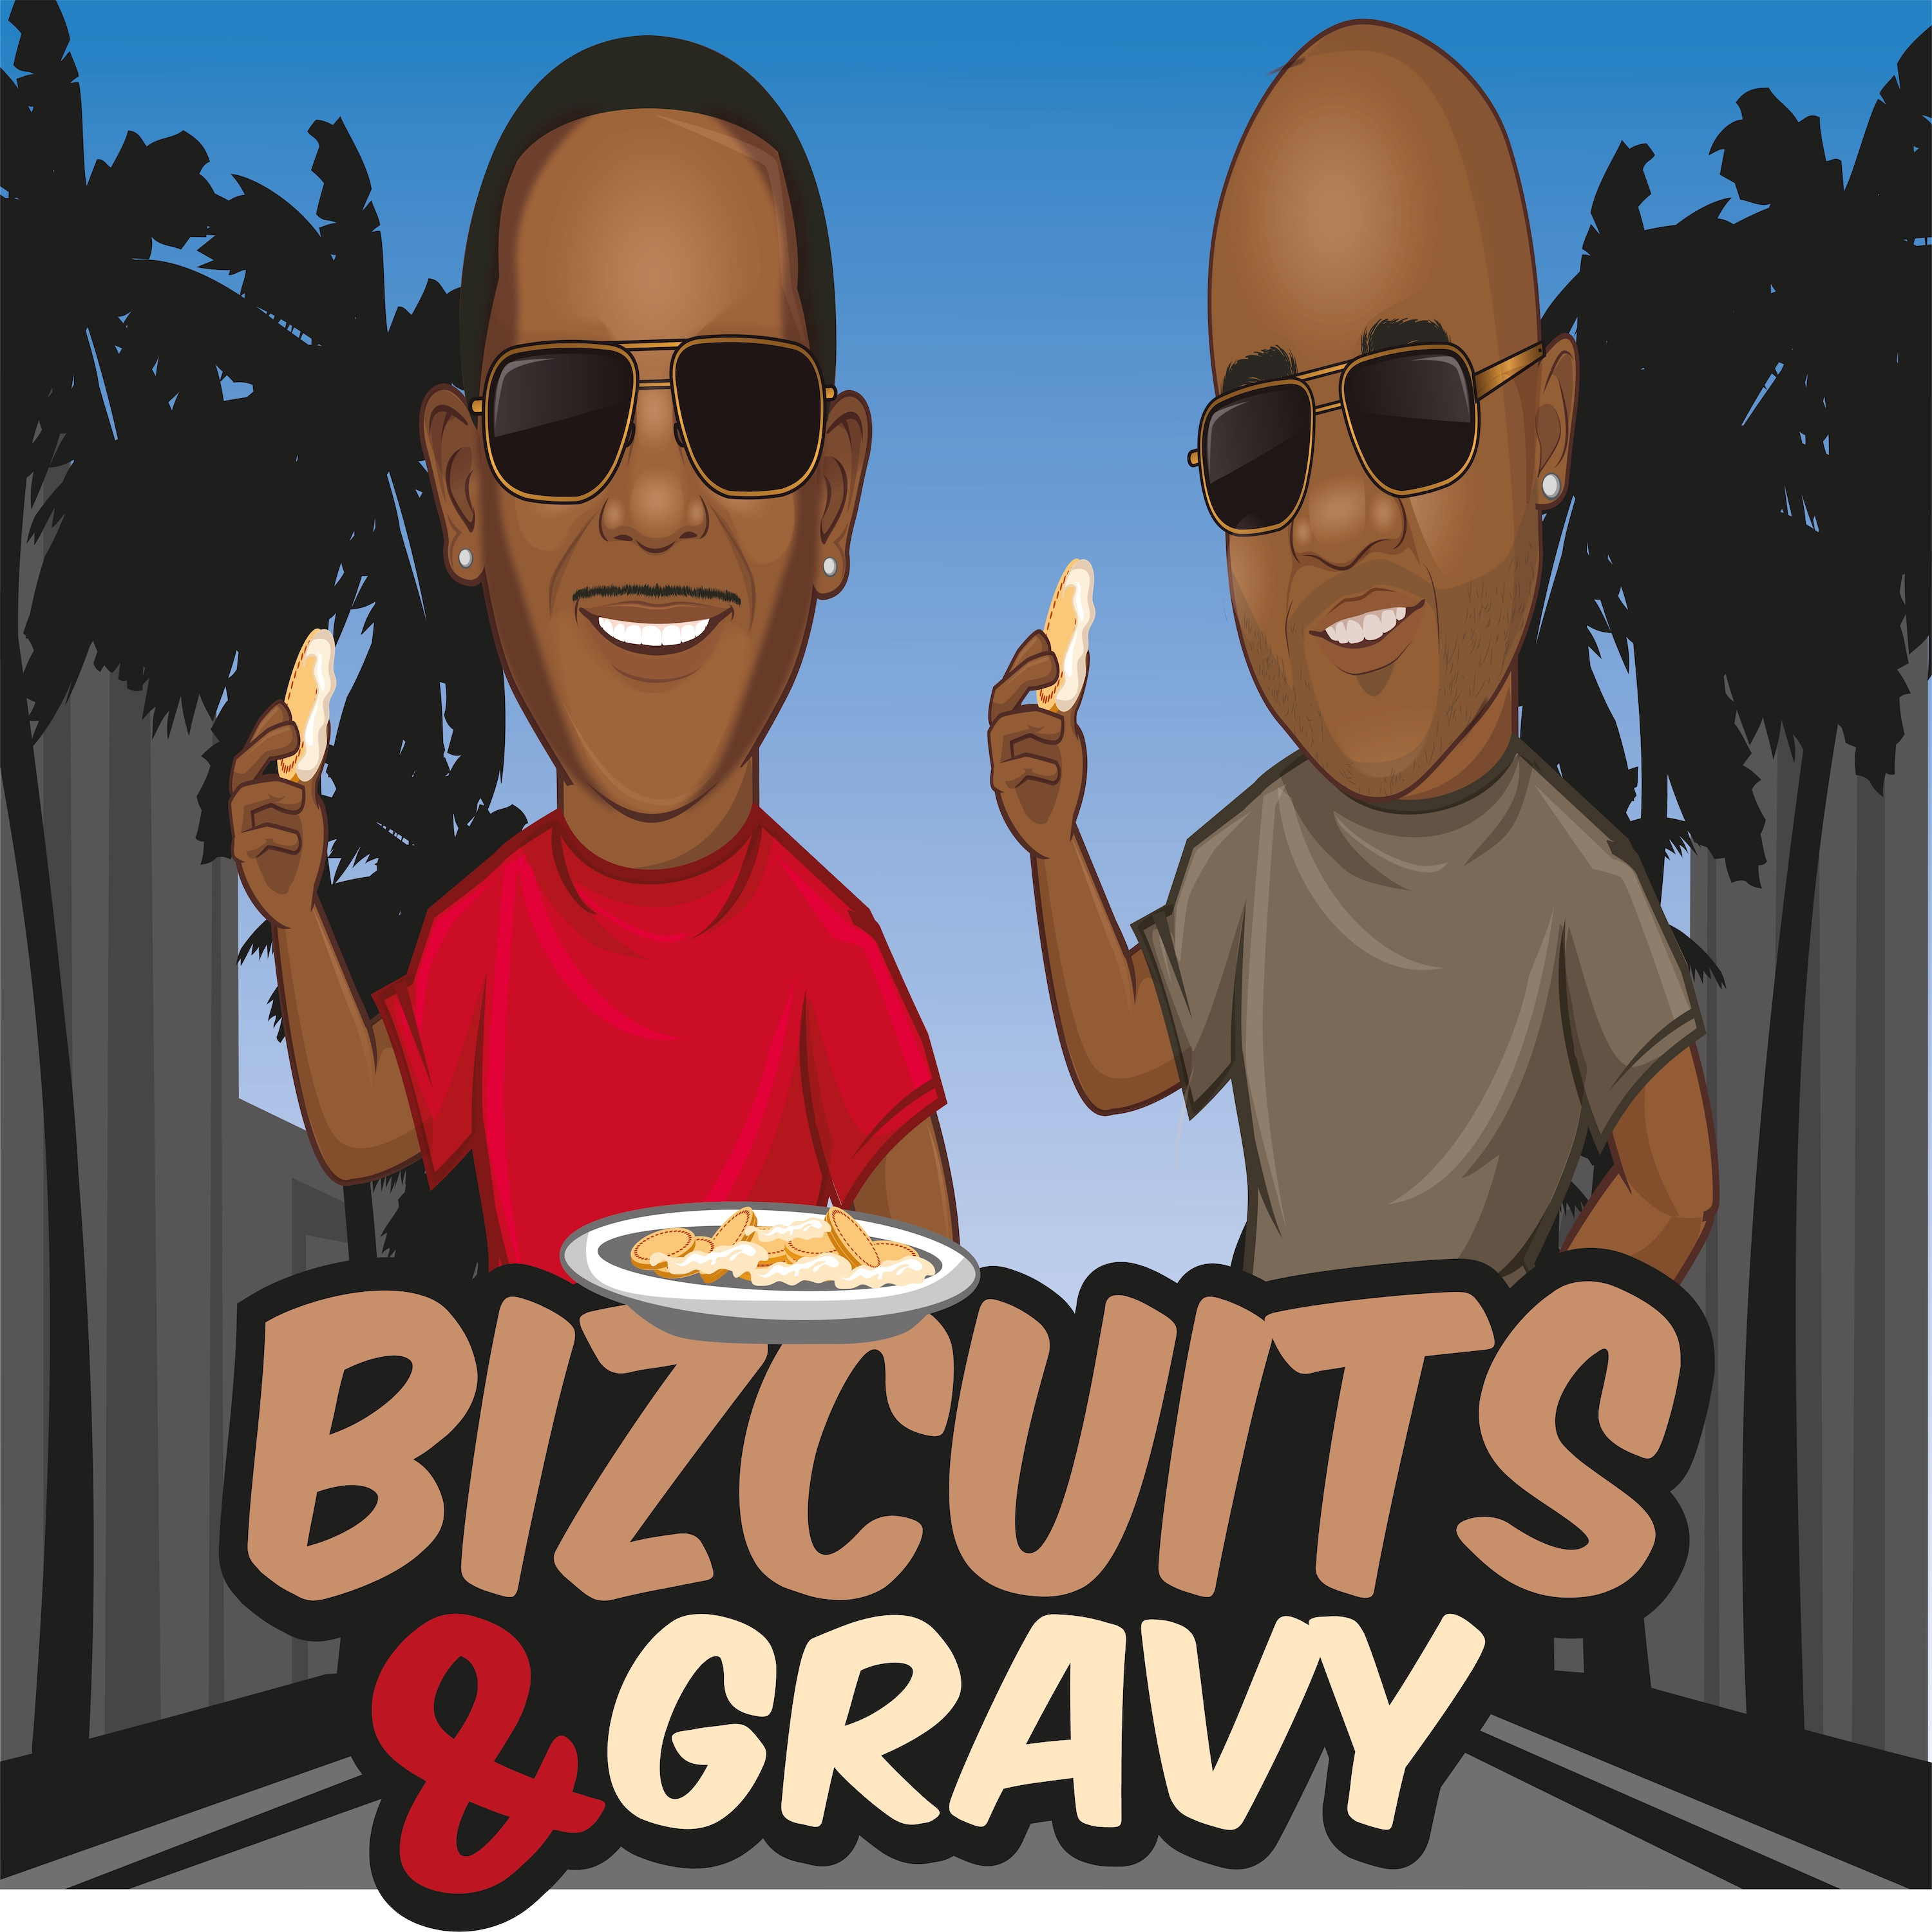 The Bizcuits & Gravy Show E:14, Check your credentials